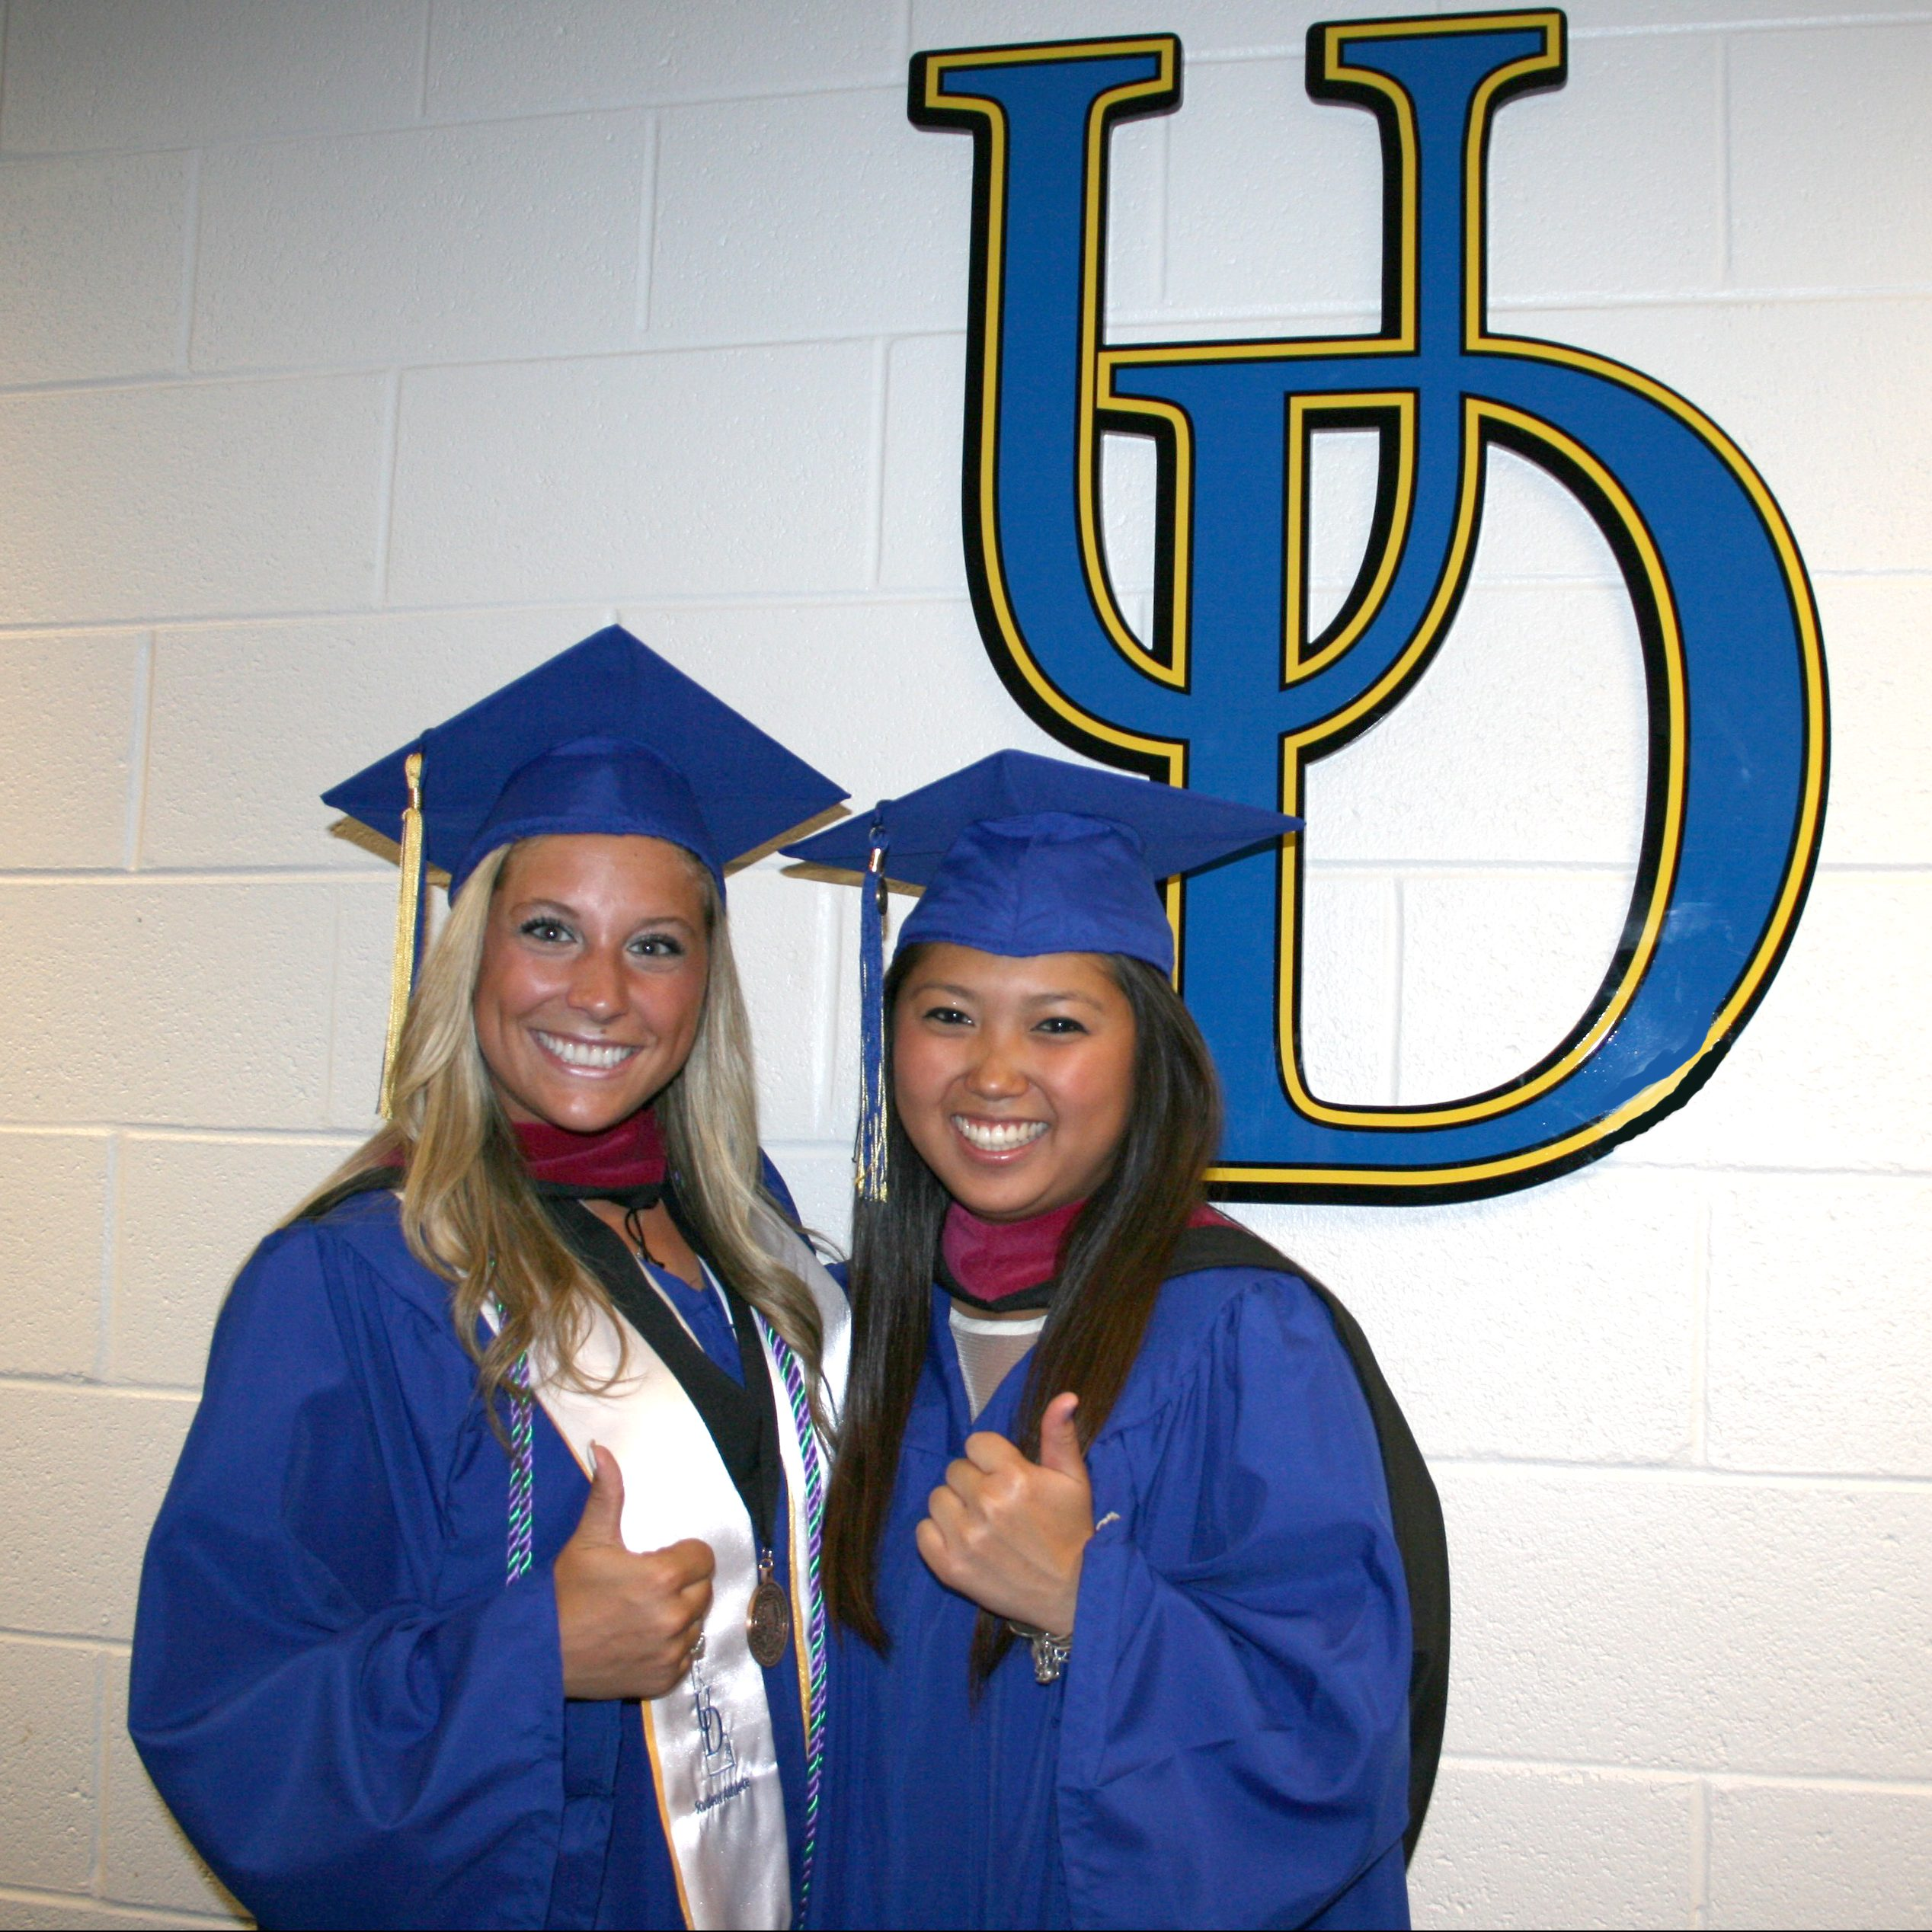 CEHD graduates give thumbs up